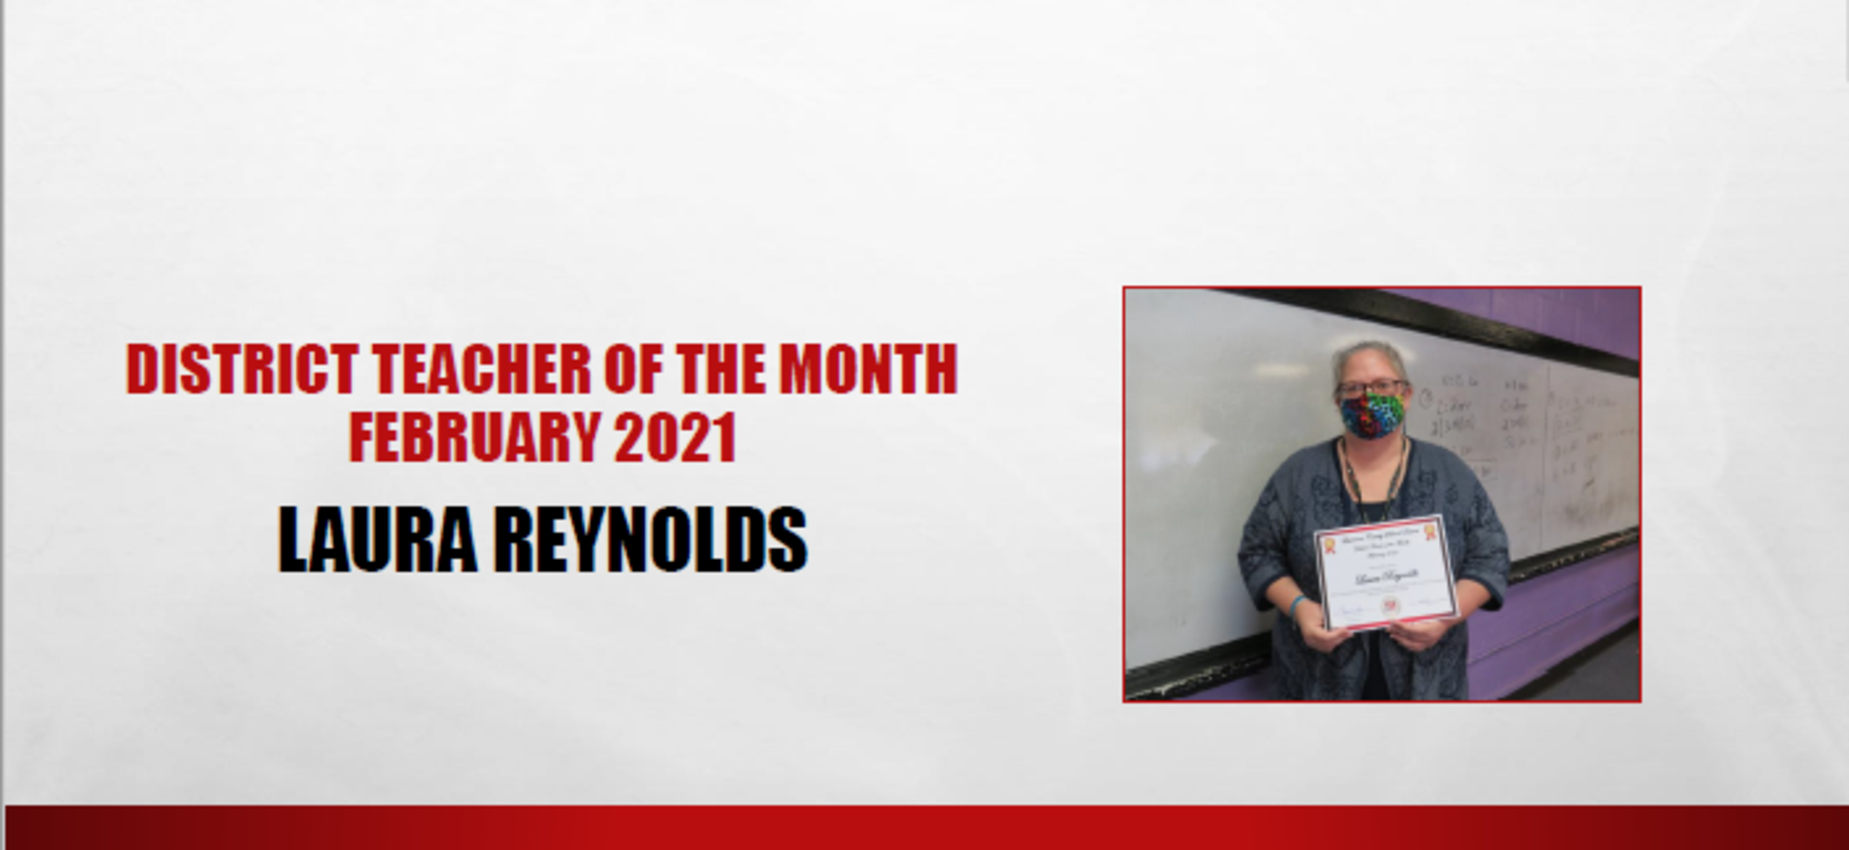 February 2021 District Teacher of the Month Laura Reynolds